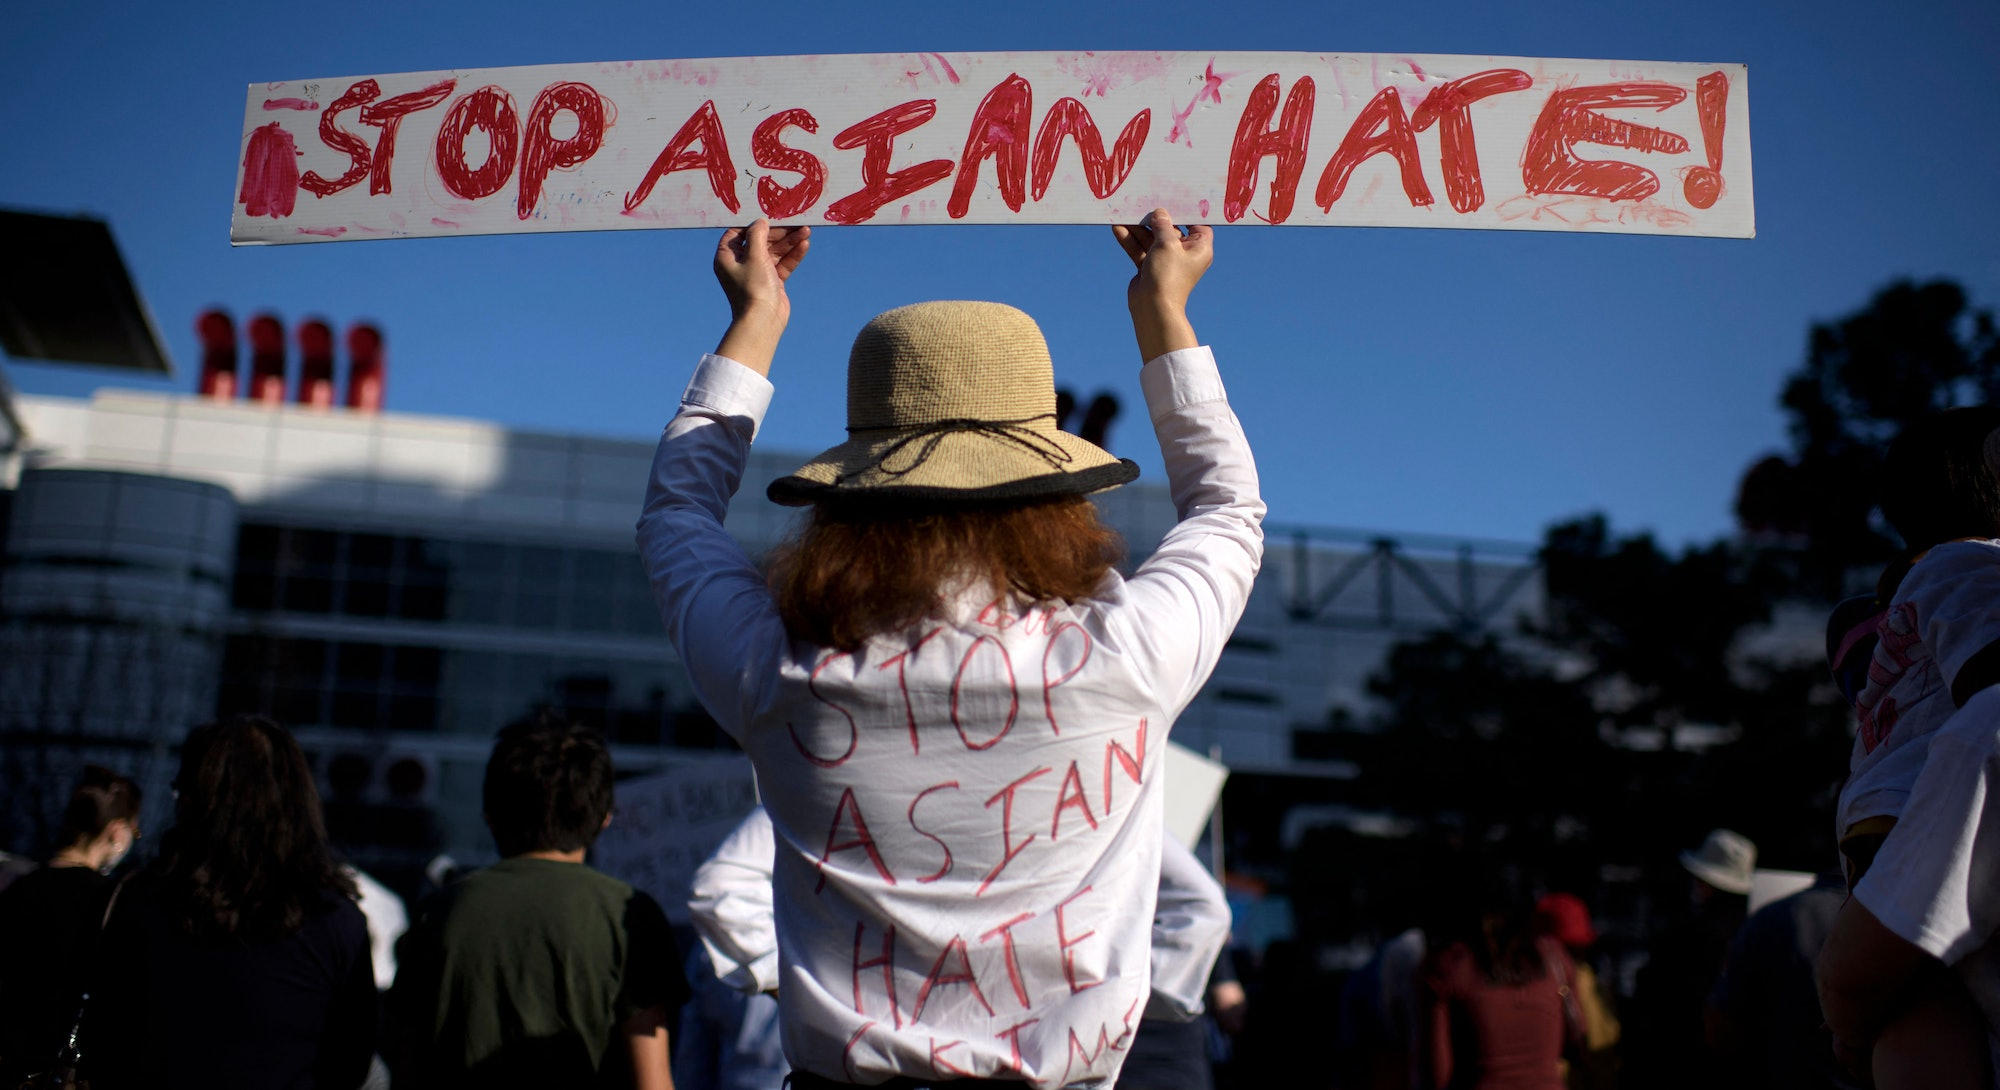 TOPSHOT - Sally Sha holds up a sign during a Stop Asian Hate rally at Discovery Green in downtown Houston, Texas on March 20, 2021. (Photo by Mark Felix / AFP) (Photo by MARK FELIX/AFP /AFP via Getty Images)